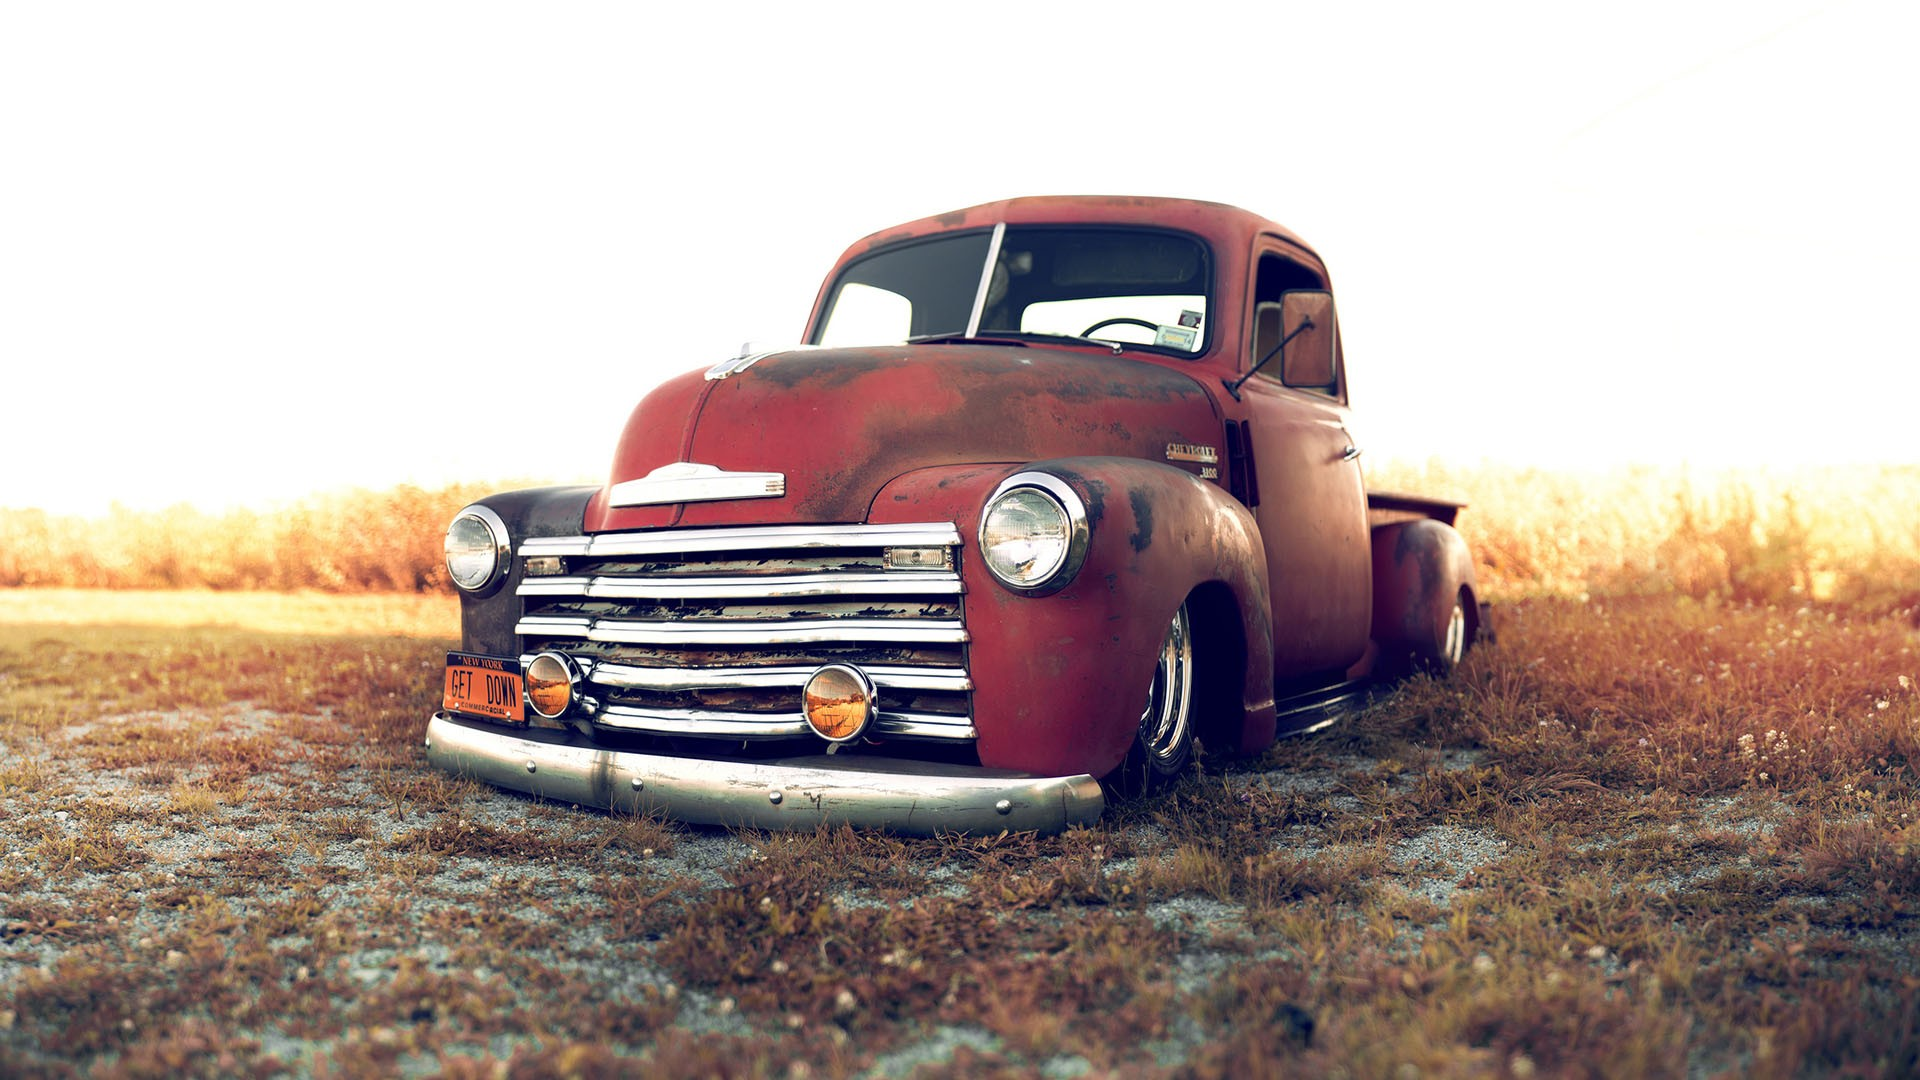 Stance Works 1949 Chevy Chevrolet Trucks Lowriders Custom Classic Pickup Truck Cars Wallpaper 1920x1080 22809 Wallpaperup